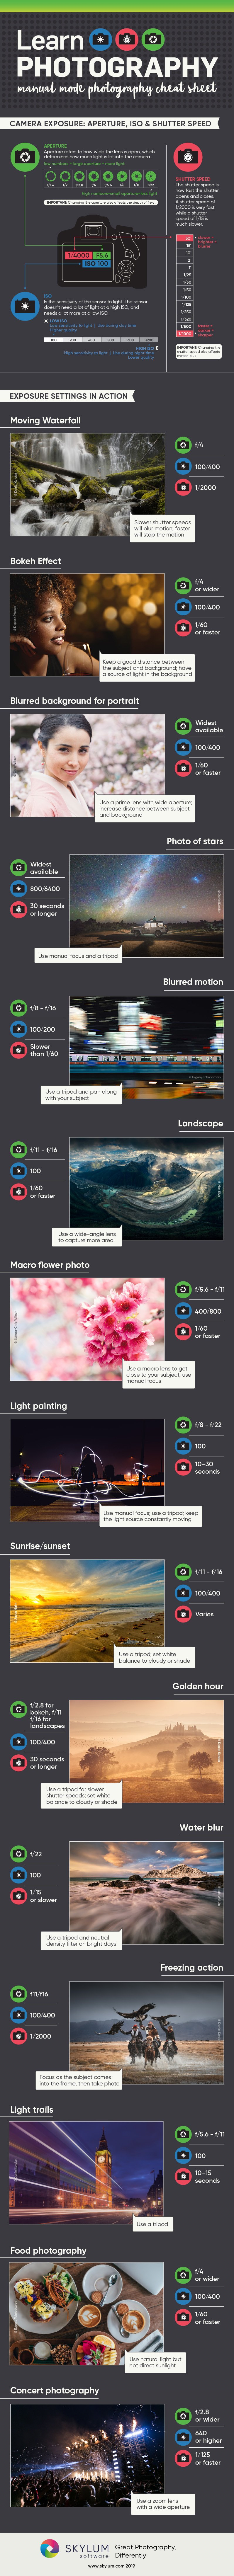 Photography Cheat Sheet: Manual Mode Camera Settings (Infographic) Image1